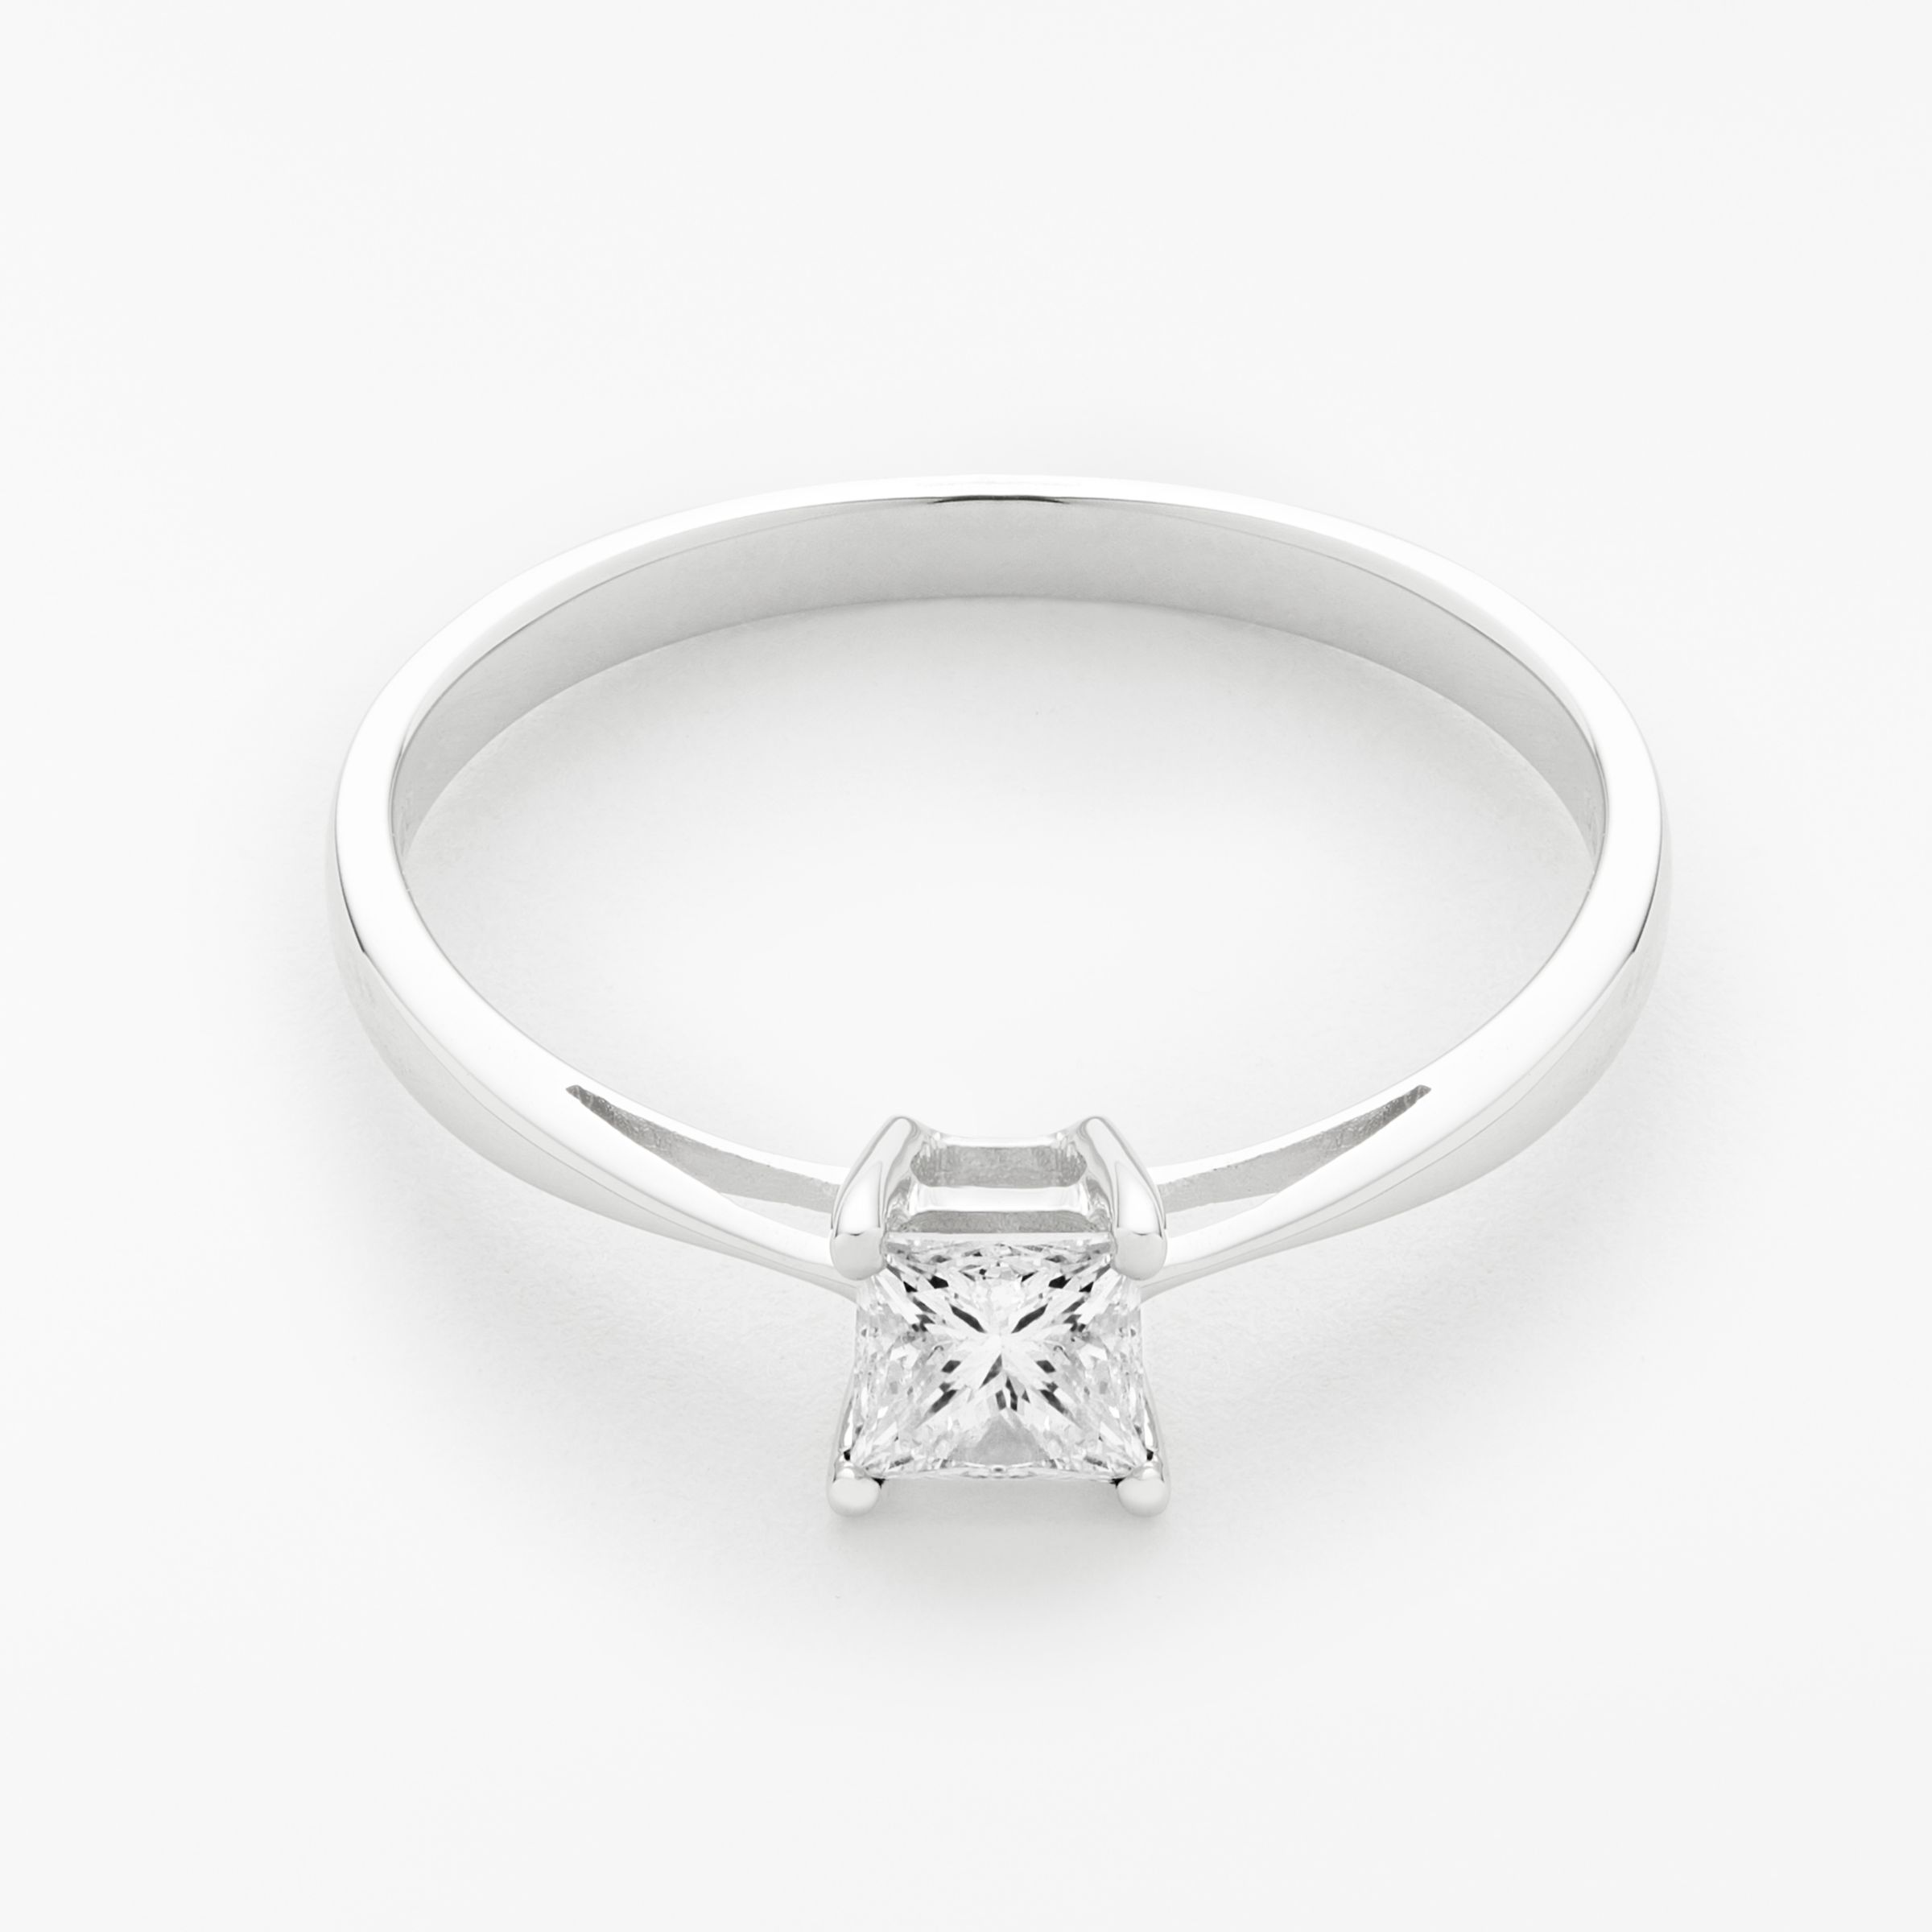 09be4190d0176f Mogul 18ct White Gold Princess Cut Diamond Engagement Ring, 0.5ct at John  Lewis & Partners